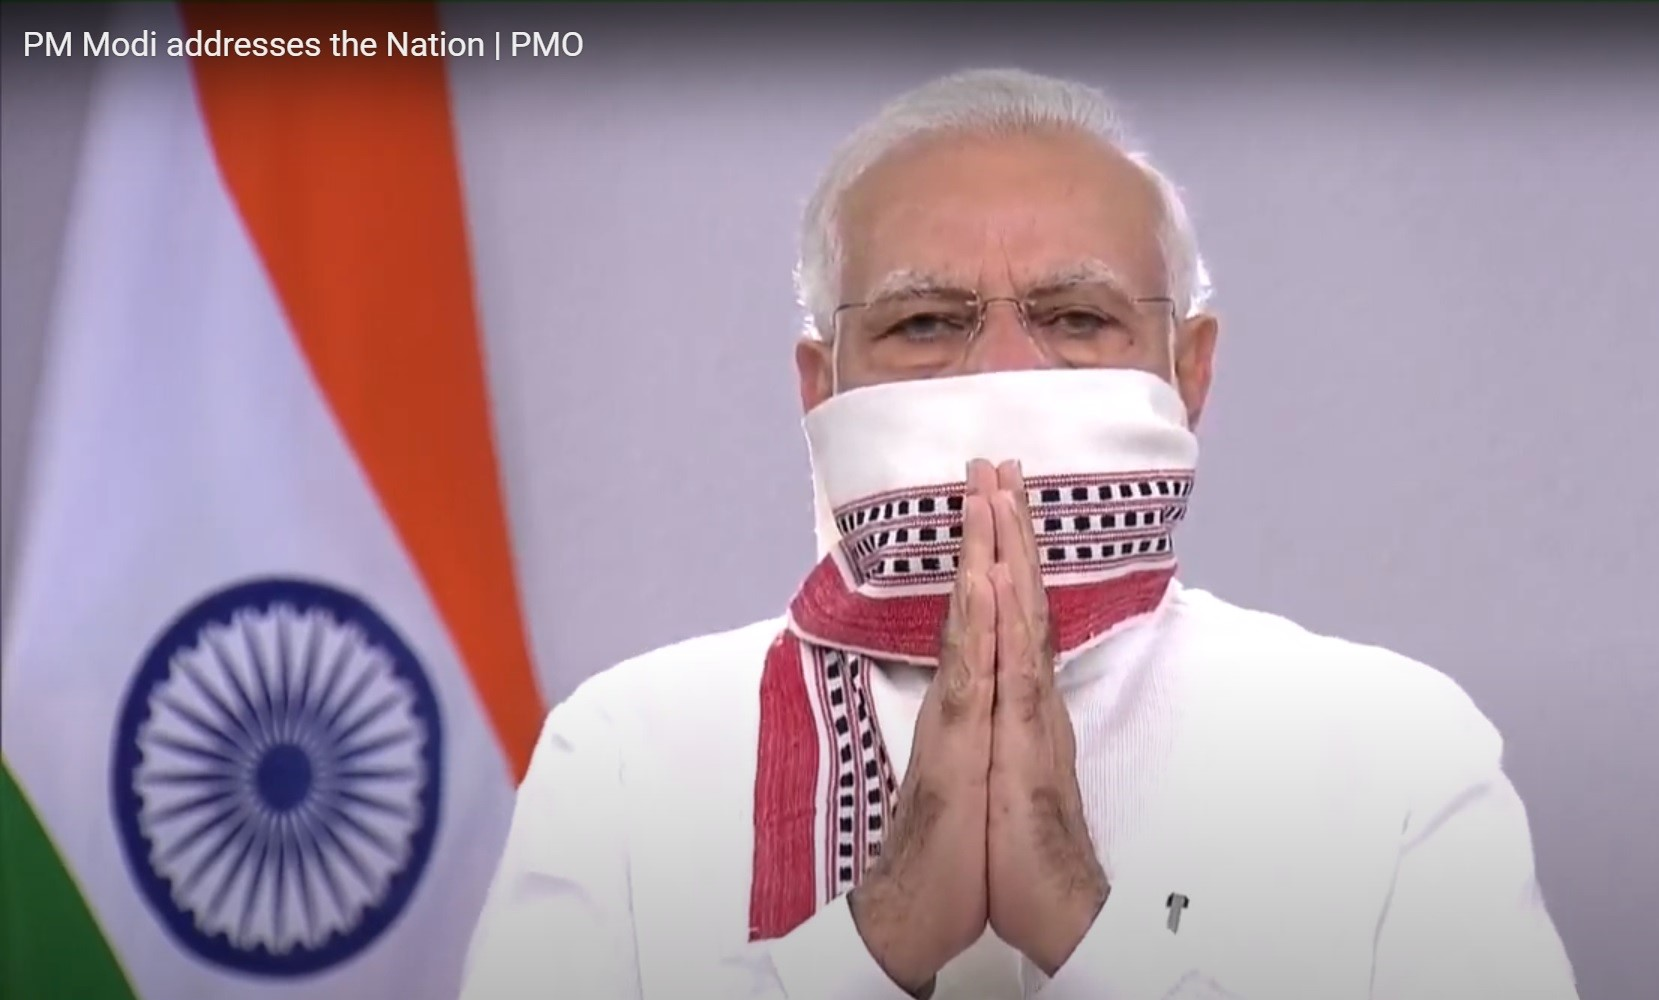 Screengrab from PM Modi's address to the nation.